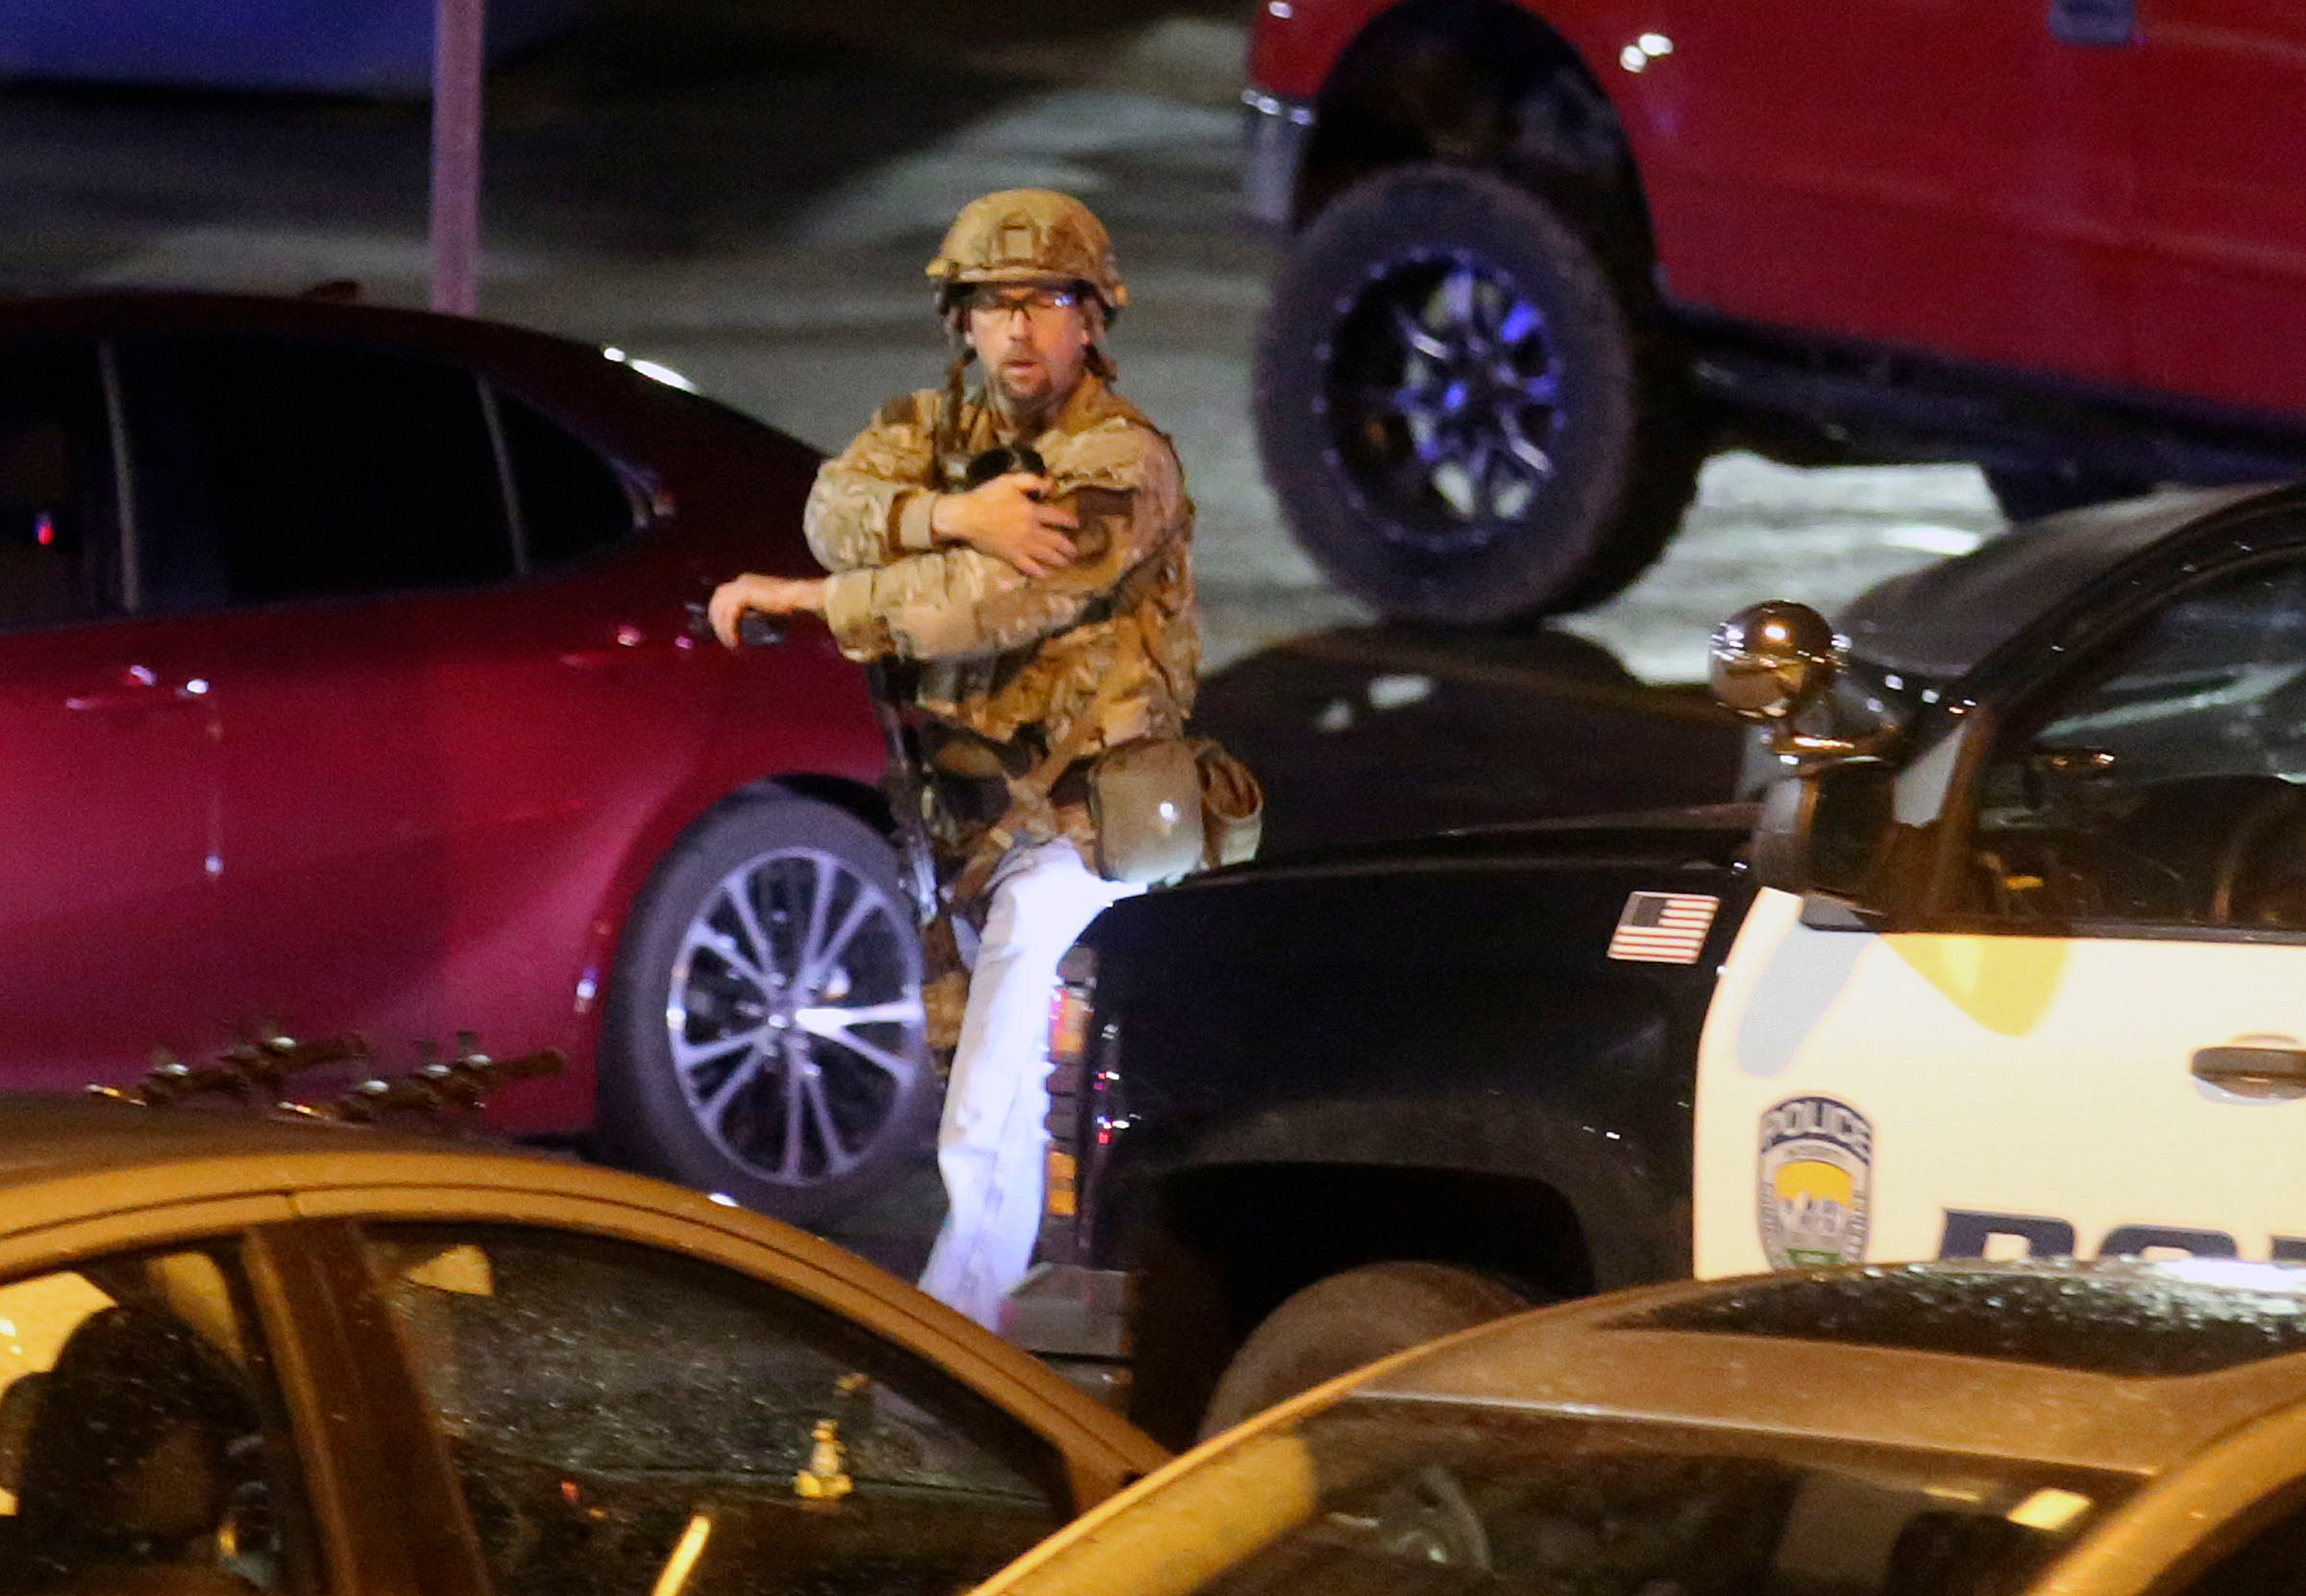 Police work near the South Medical Tower on the University of Utah campus in Salt Lake City as they search for a shooting suspect on Monday, Oct. 22, 2018.